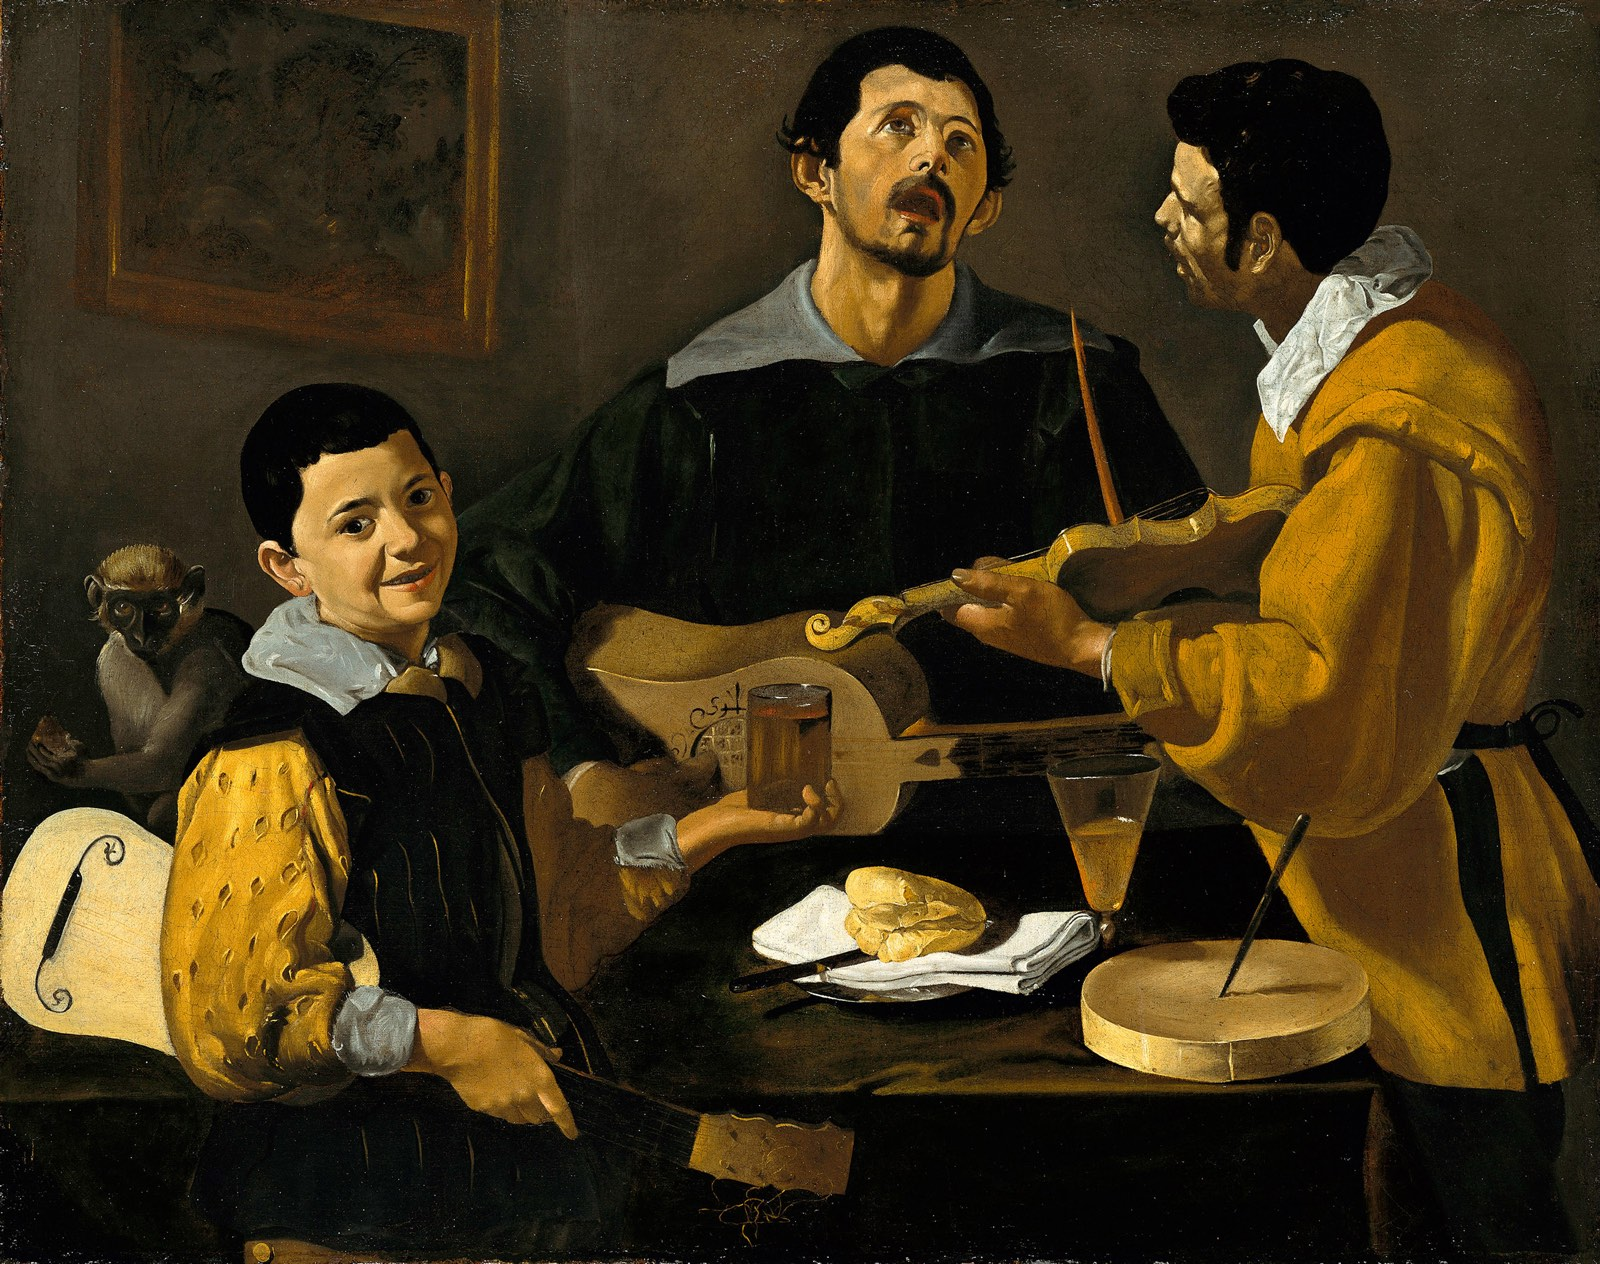 Diego_Velázquez_-_The_Three_Musicians_-_Google_Art_Project